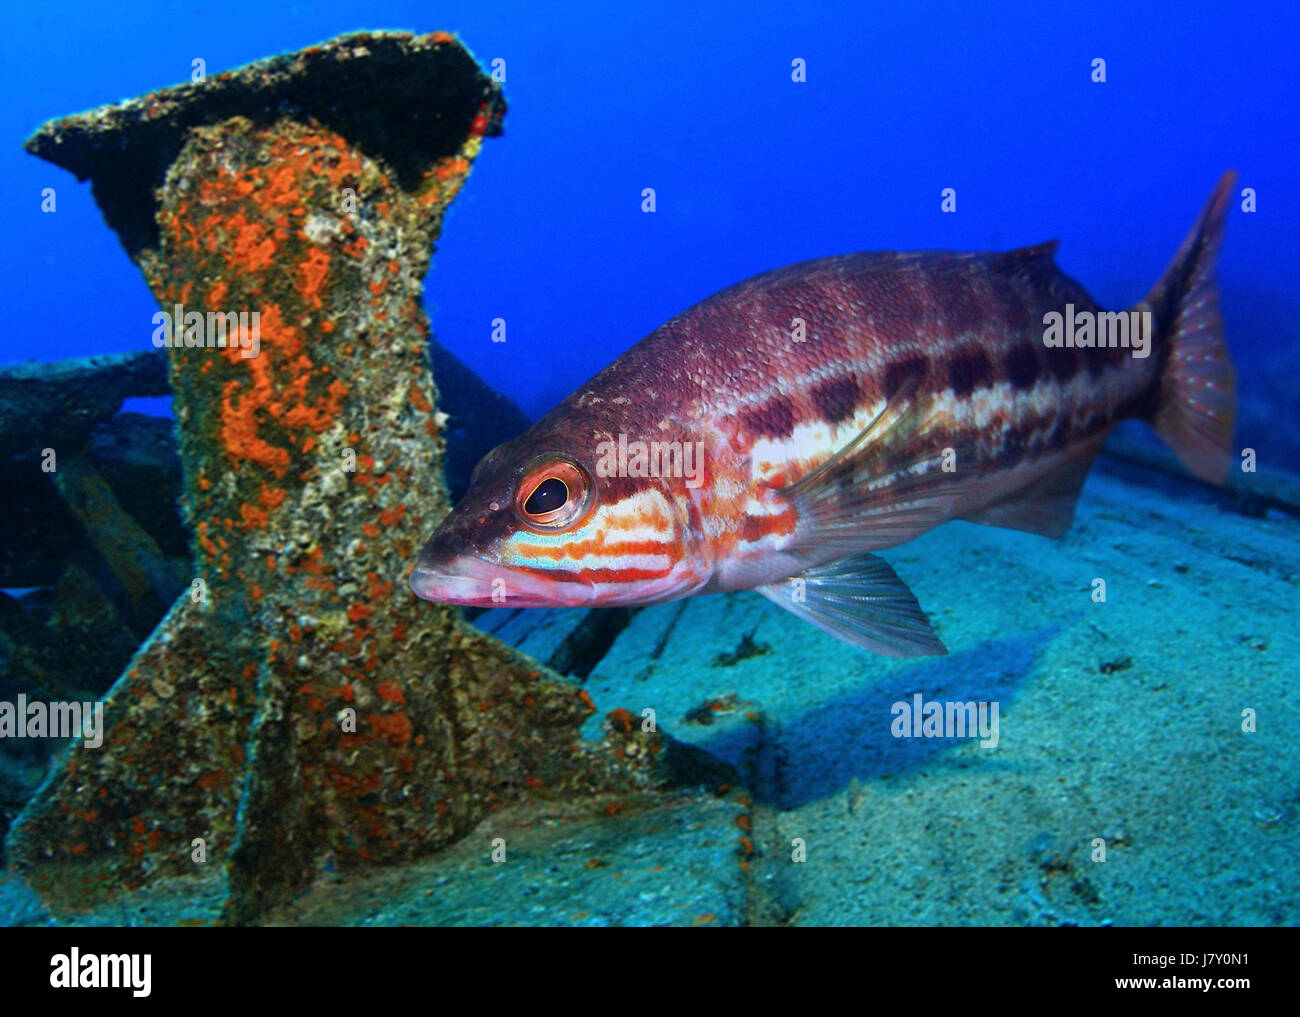 Comber, Serranus cabrilla. Lateral view on ship wreck. Azores, Portugal. - Stock Image